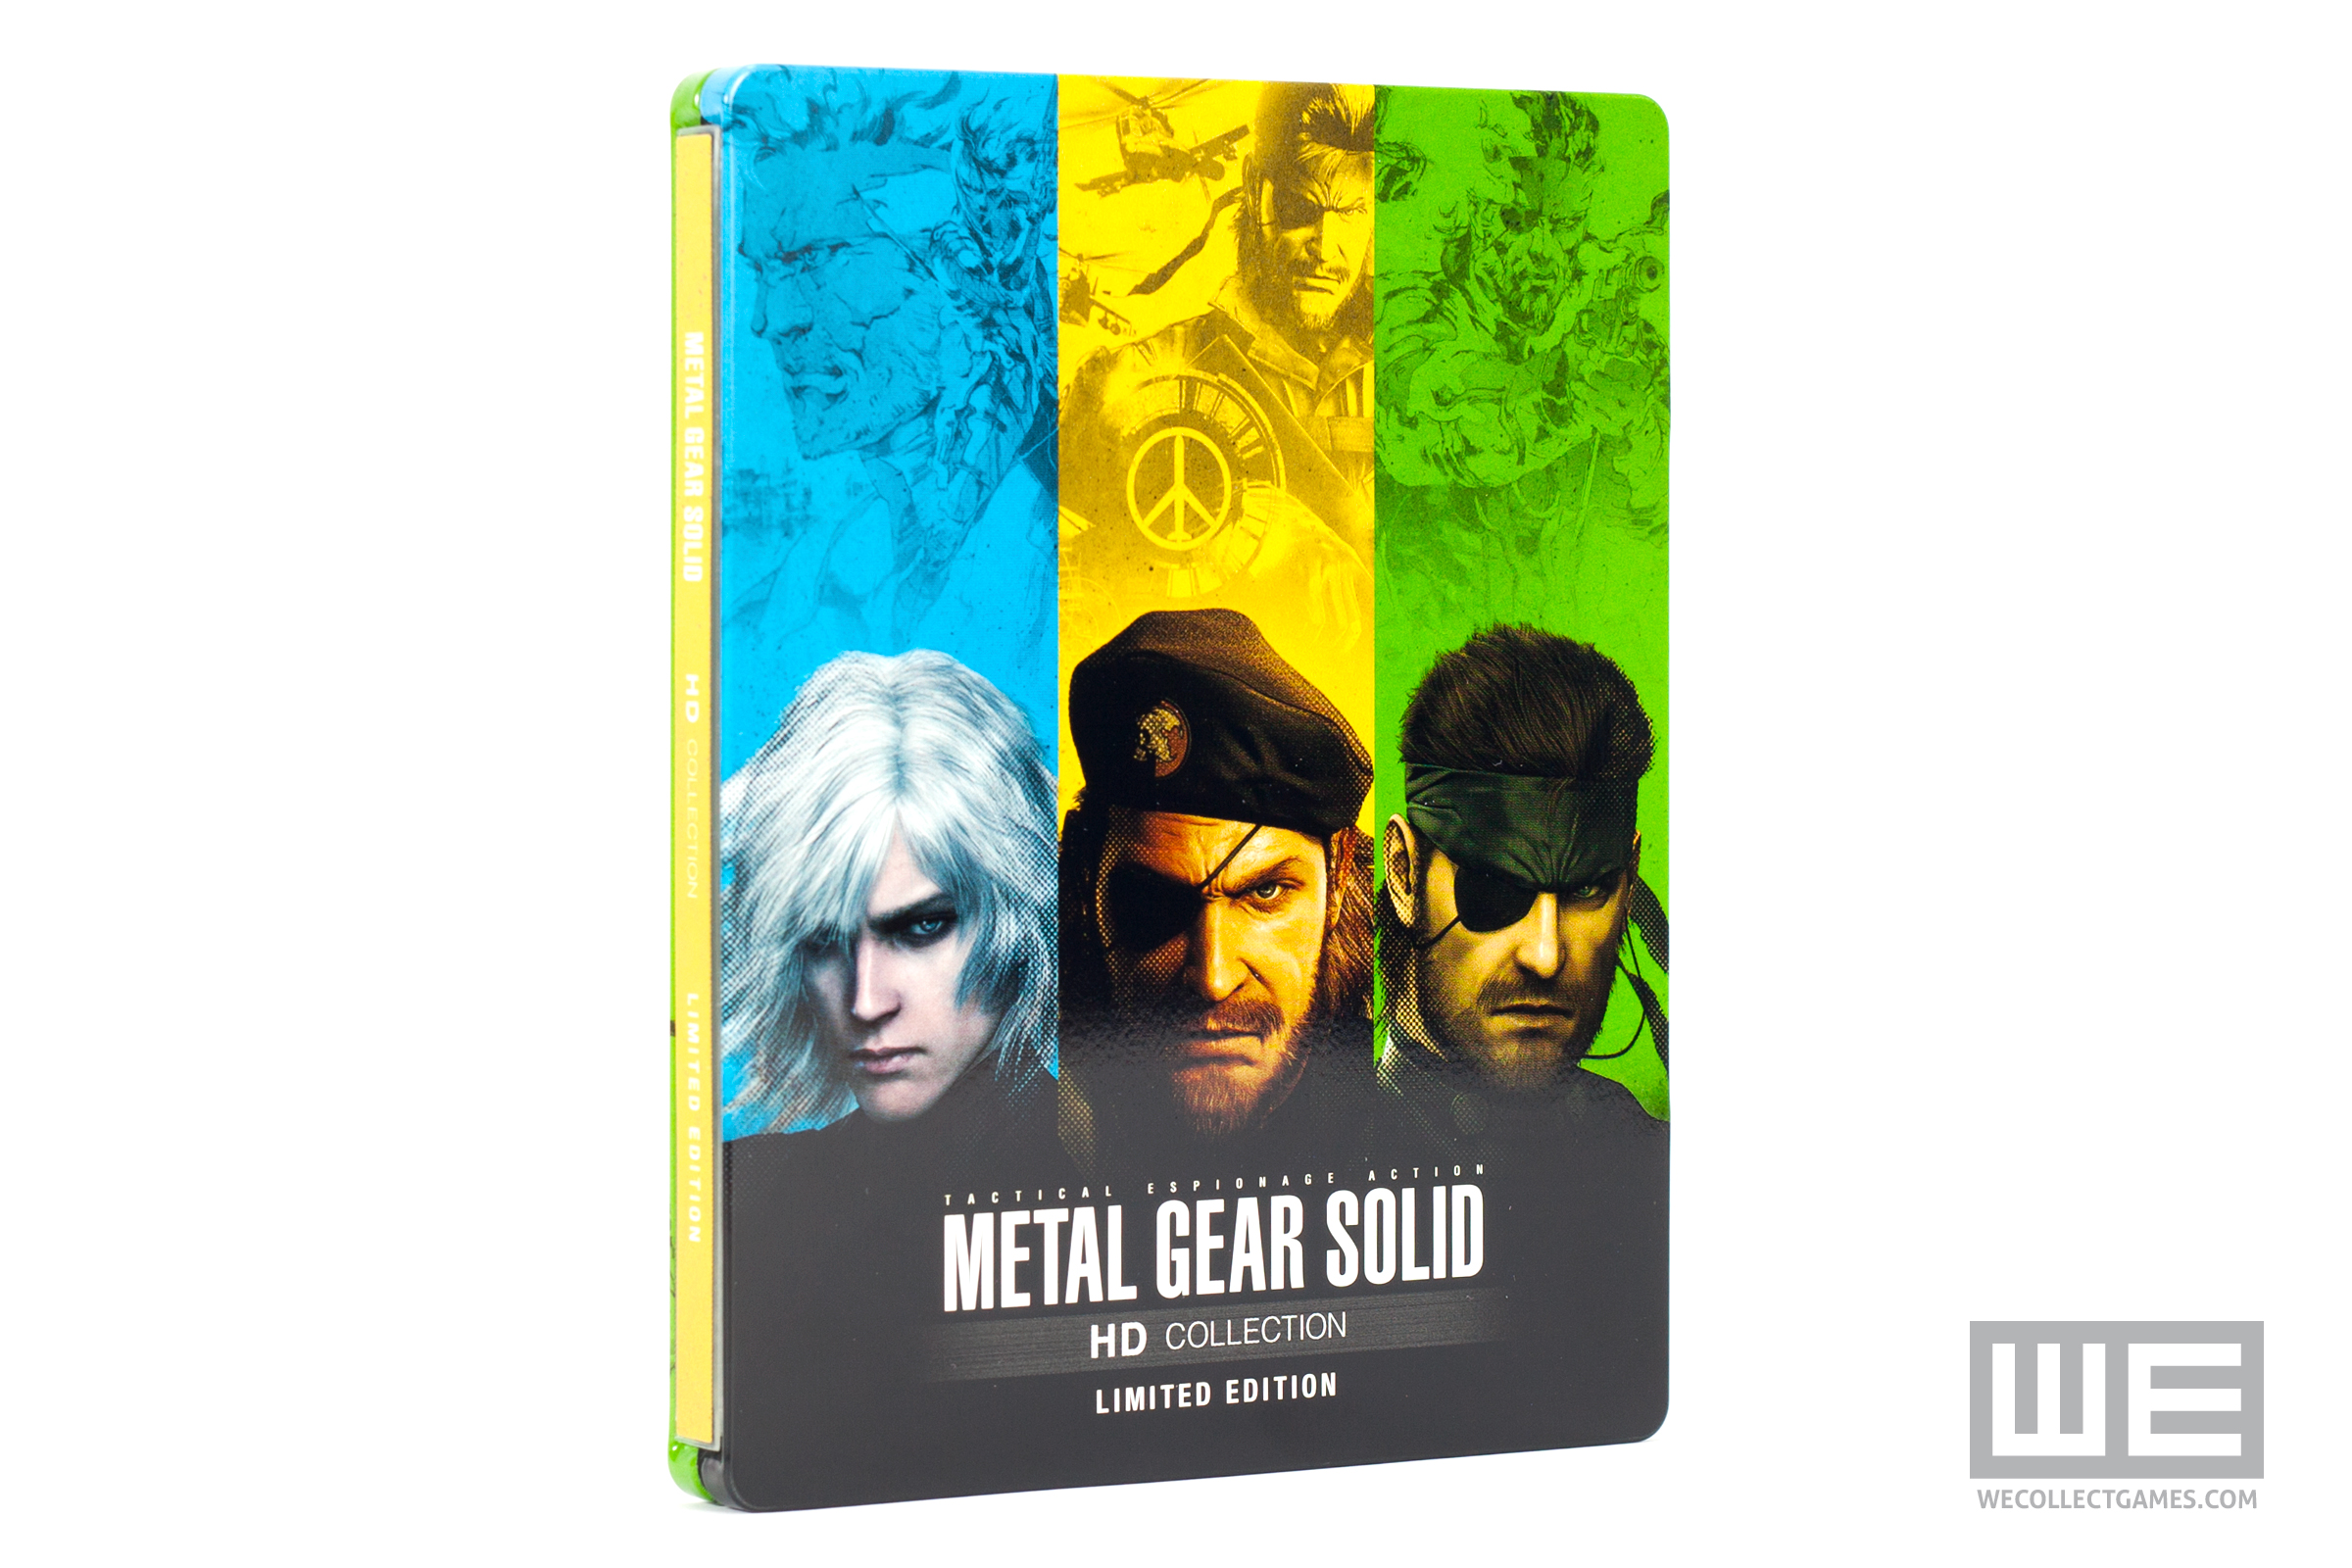 Metal Gear Solid HD Collection Steelbook